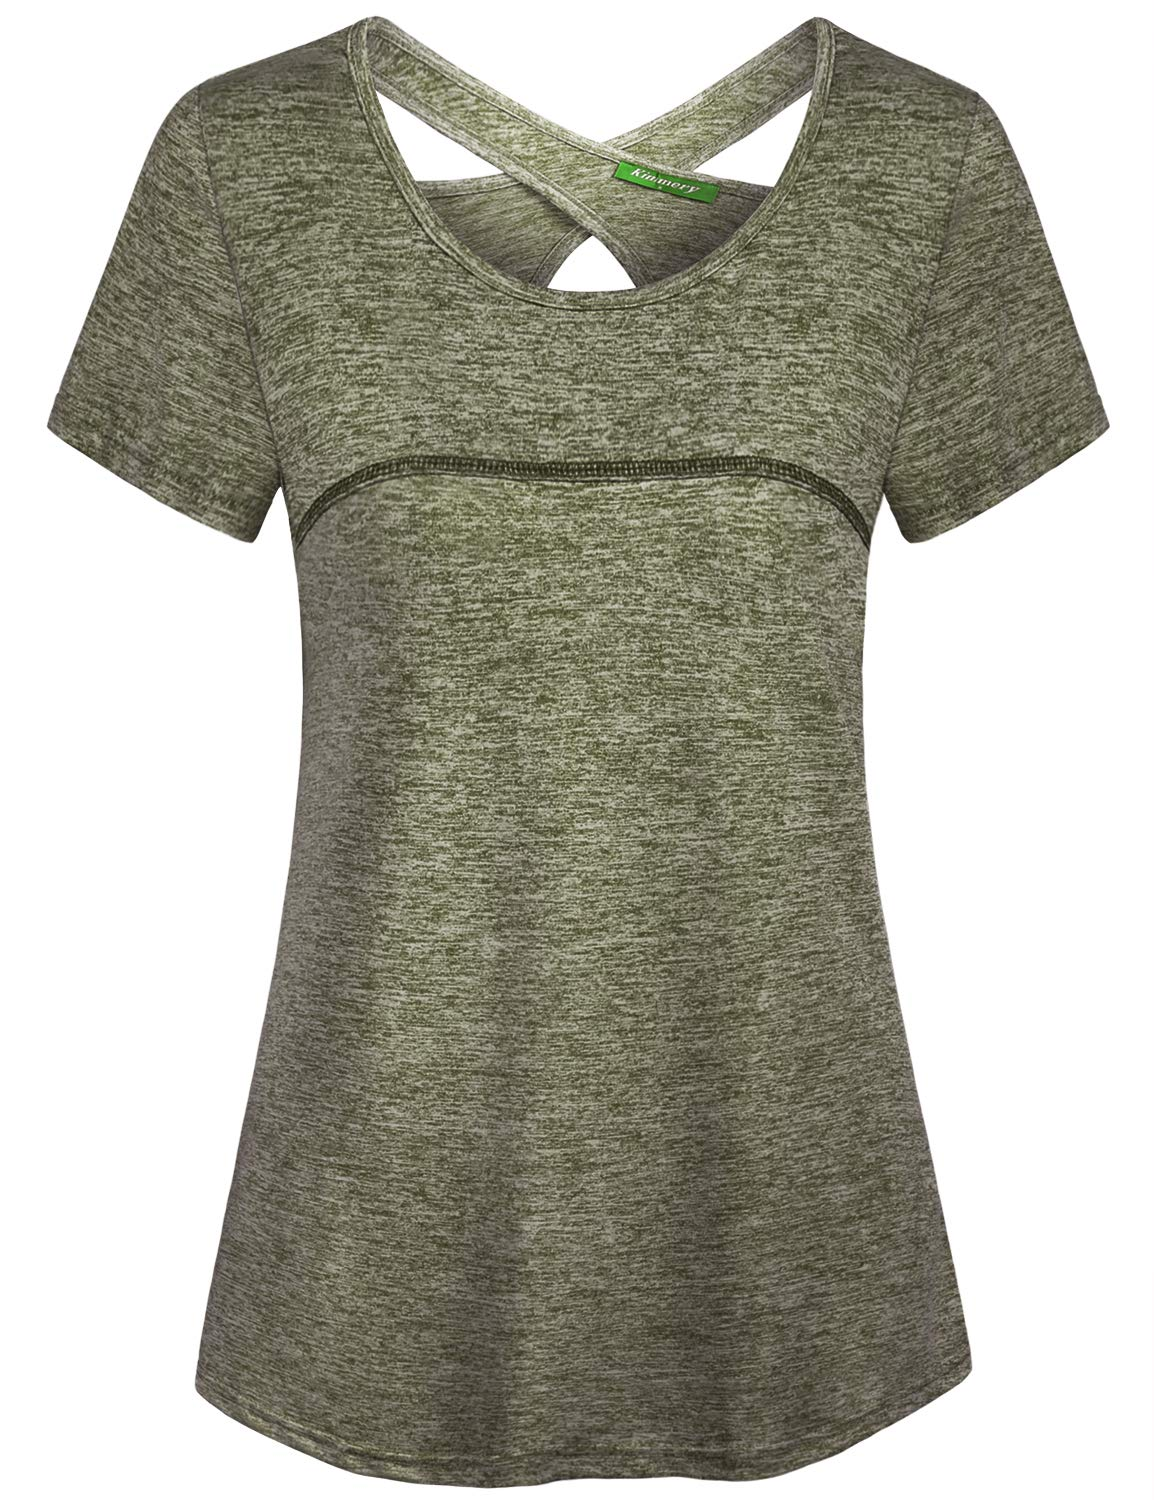 Kimmery Tunic Shirt,Women Loose Fit Short Sleeve Top Flowy Hemline Breathe Stretchy Tees Fashionable Design Summer Wicking Tunic Swing Beach Blouse Army Green XXL by connche